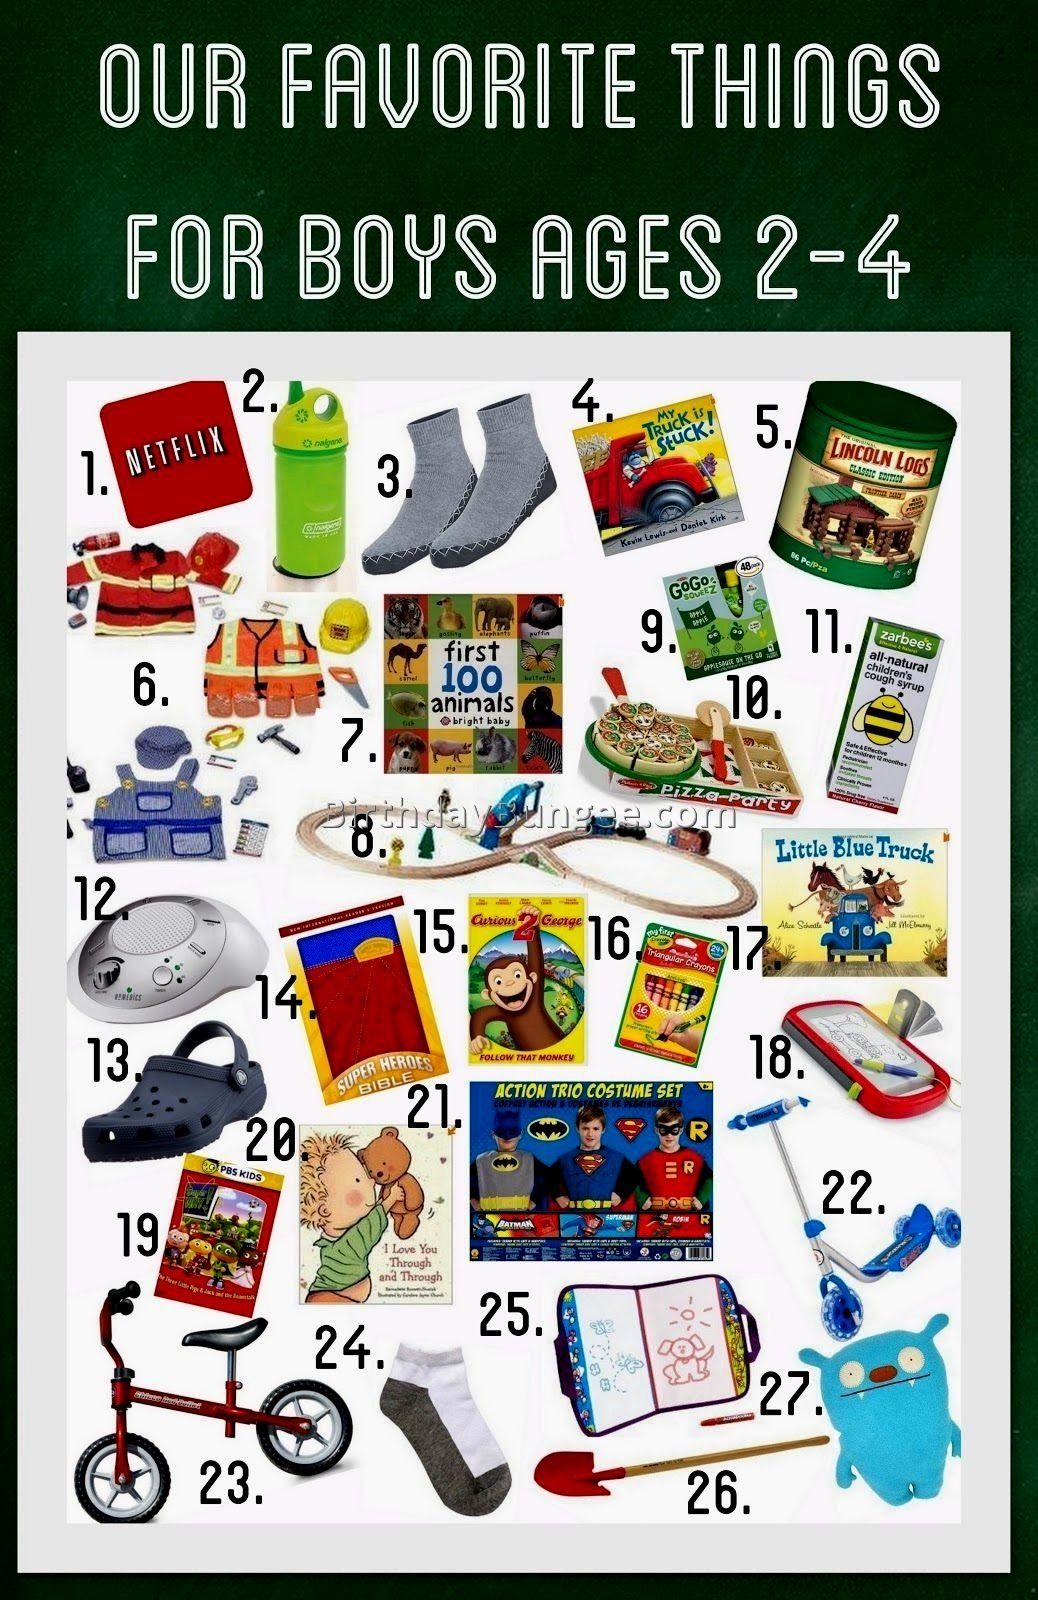 10 Elegant Year Old Boy Birthday Gift Ideas Good Gifts For